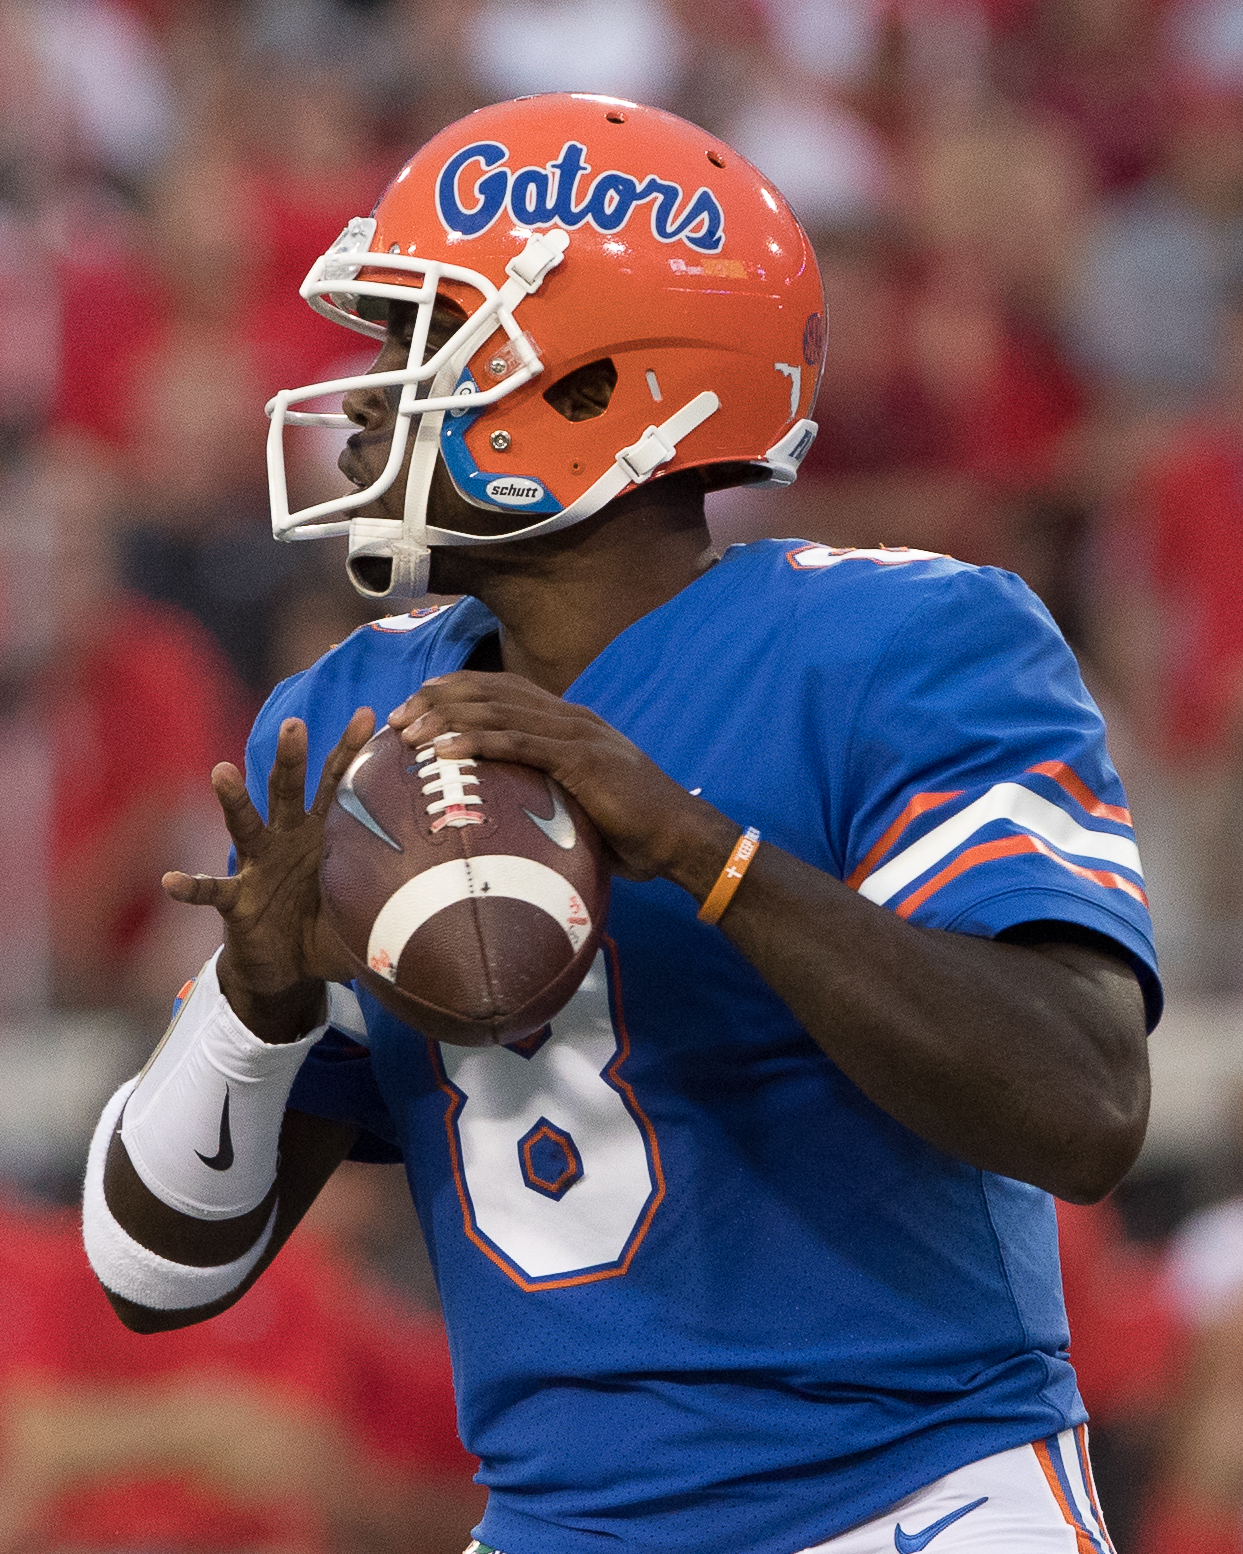 Malik Zaire was injured for Gators./STEVEN MUNCIE